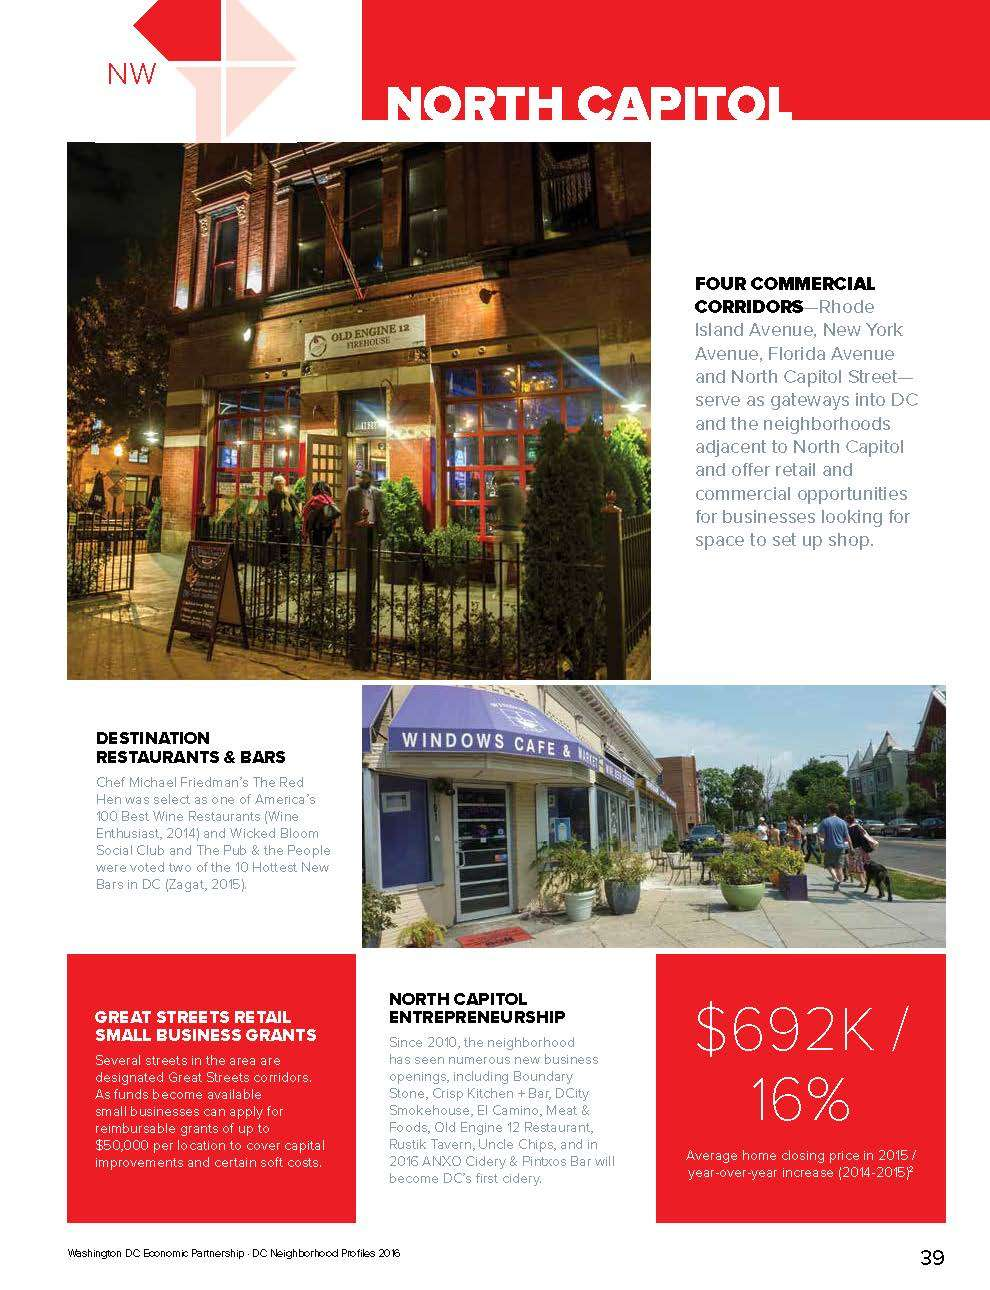 10 Florida Avenue restaurant and retail space for lease in dc NoMa neighborhood SF Miller walker retail brokers dc demographics_page_3